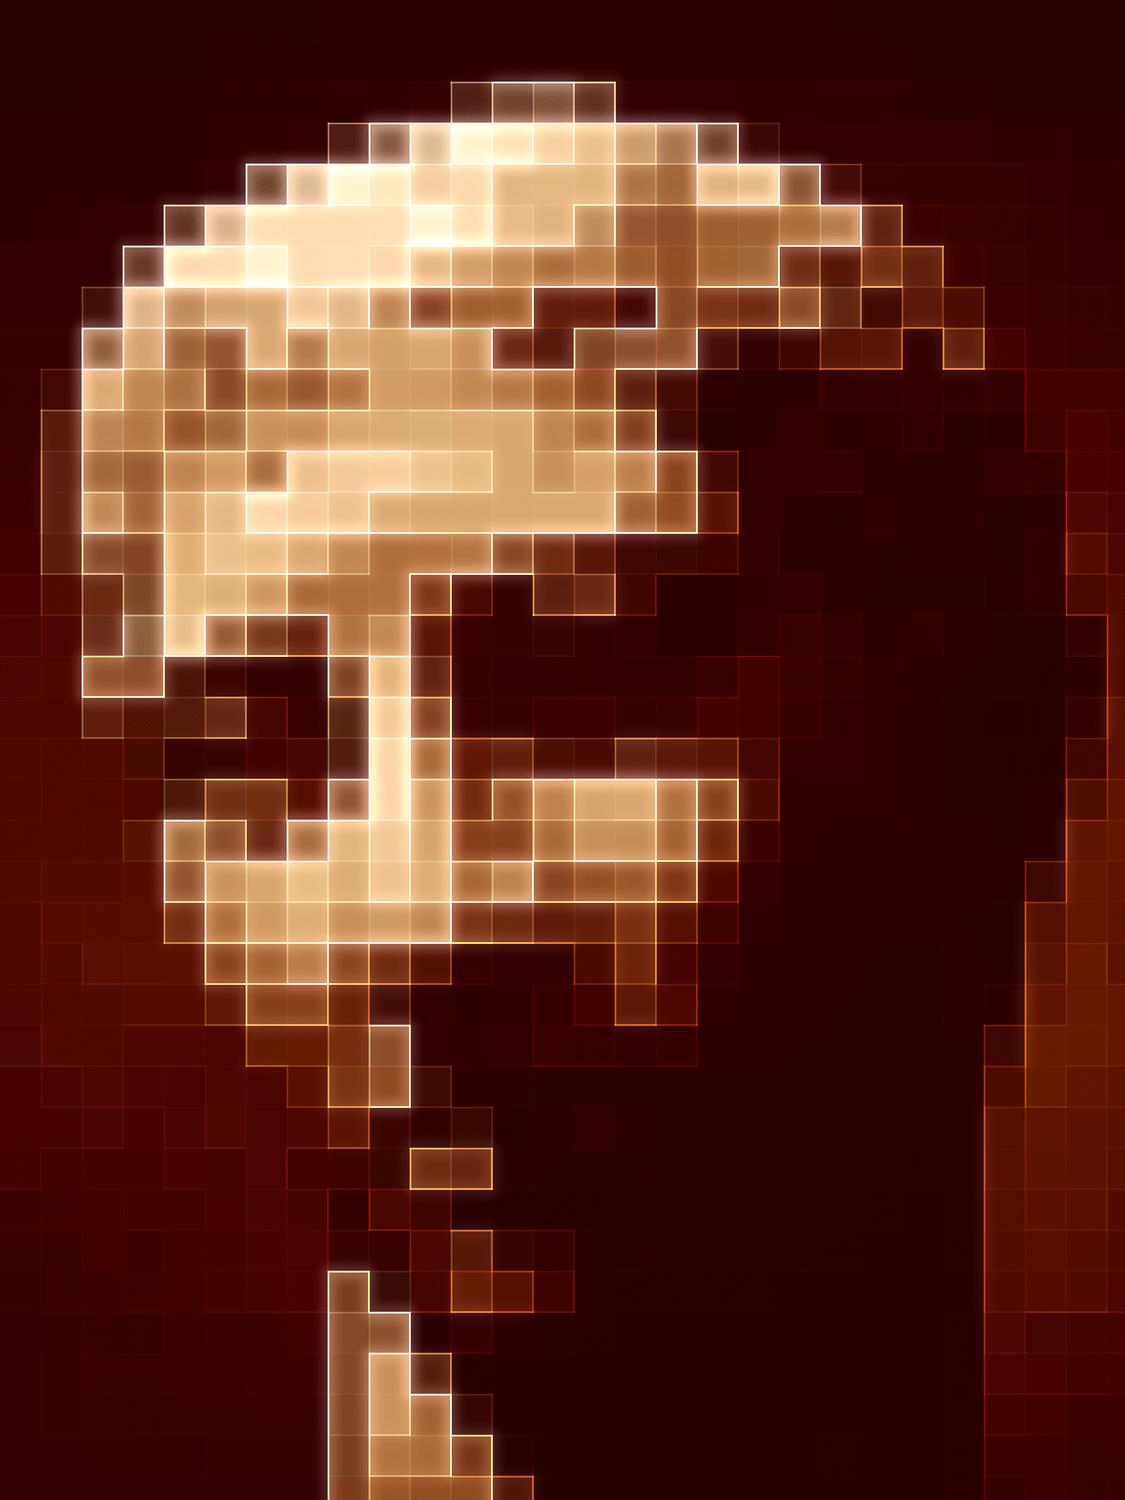 Portrait of the head of a statue from the Metropolitan Museum of Art Brown head made from brown squares, portrait that is an optical illusion - <center>Portrait in shades of brown - Techno-Impressionist Museum - Techno-Impressionism - art - beautiful - photo photography picture - by Tony Karp